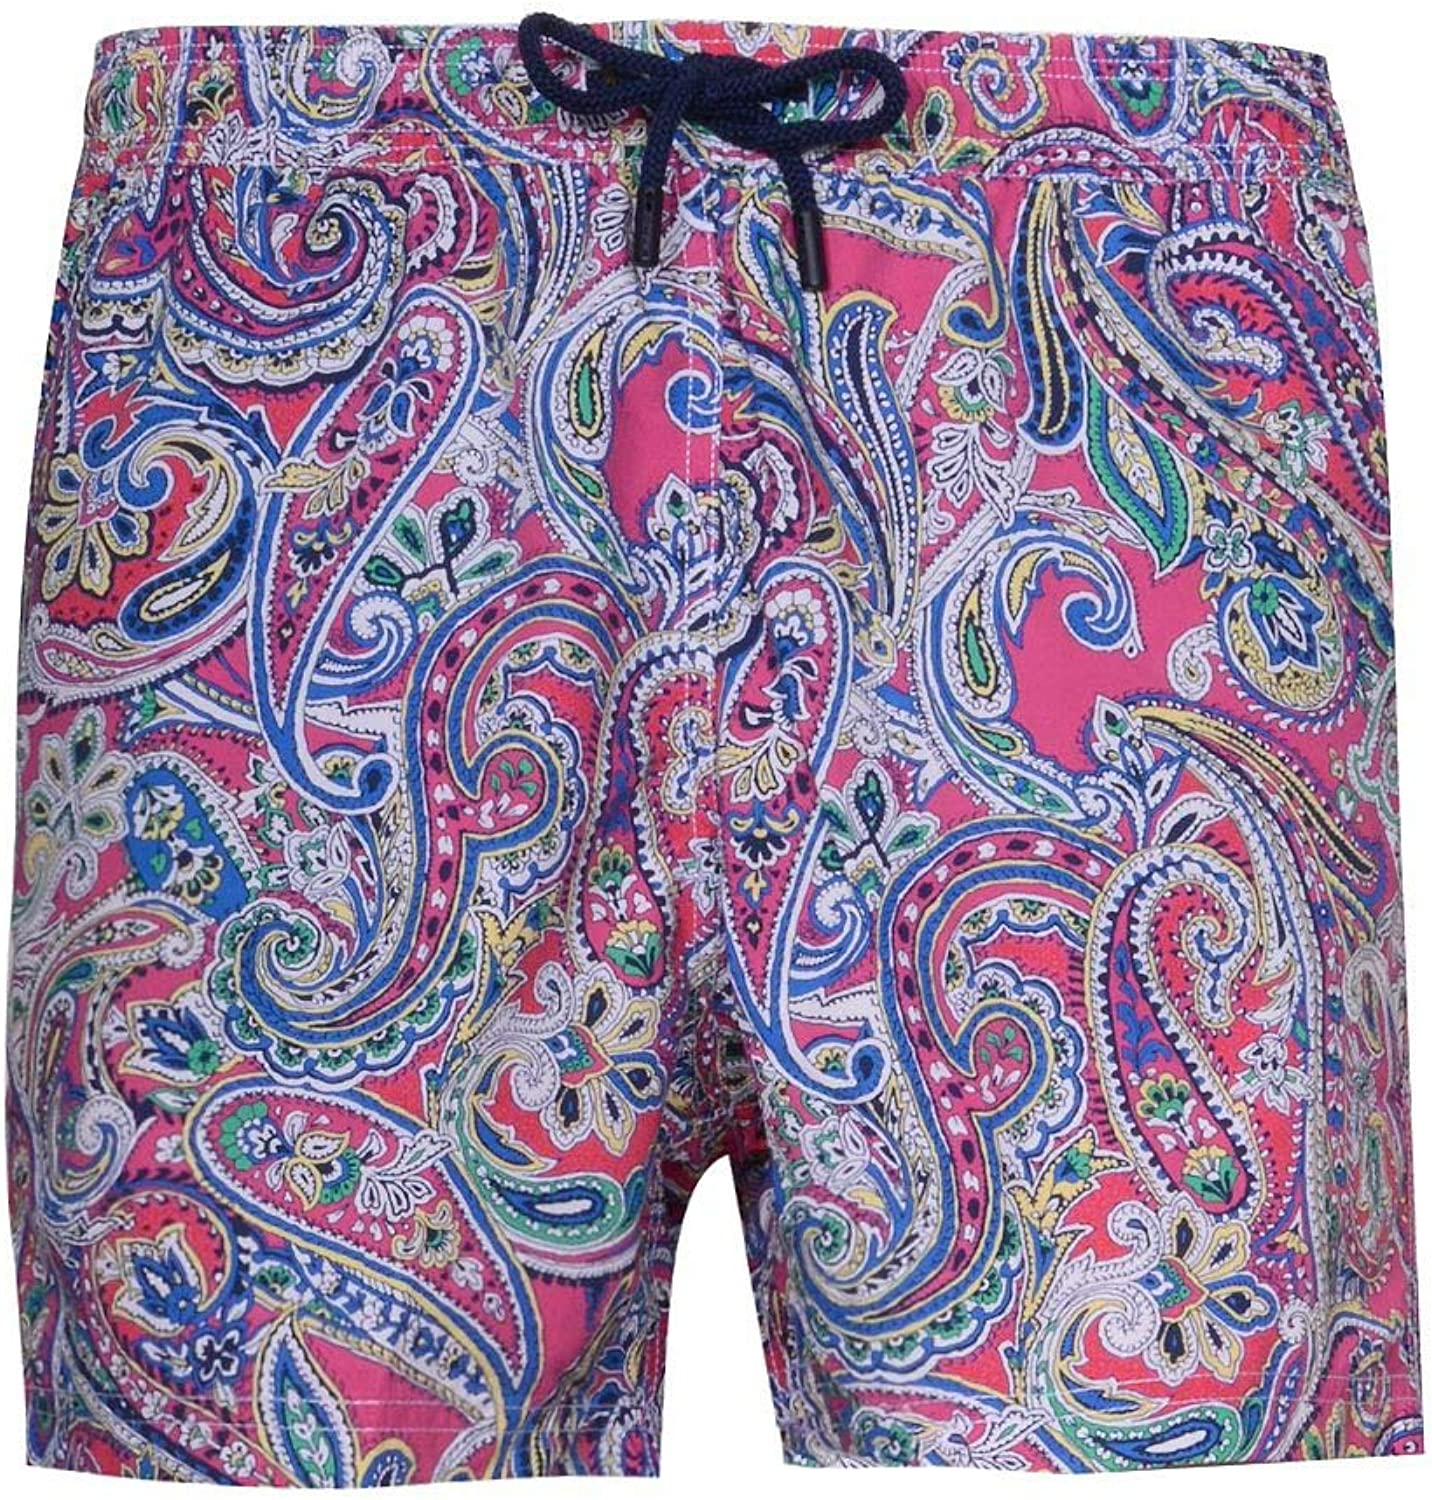 Etro Men's 1B1004766651 Multicolor Polyester Trunks